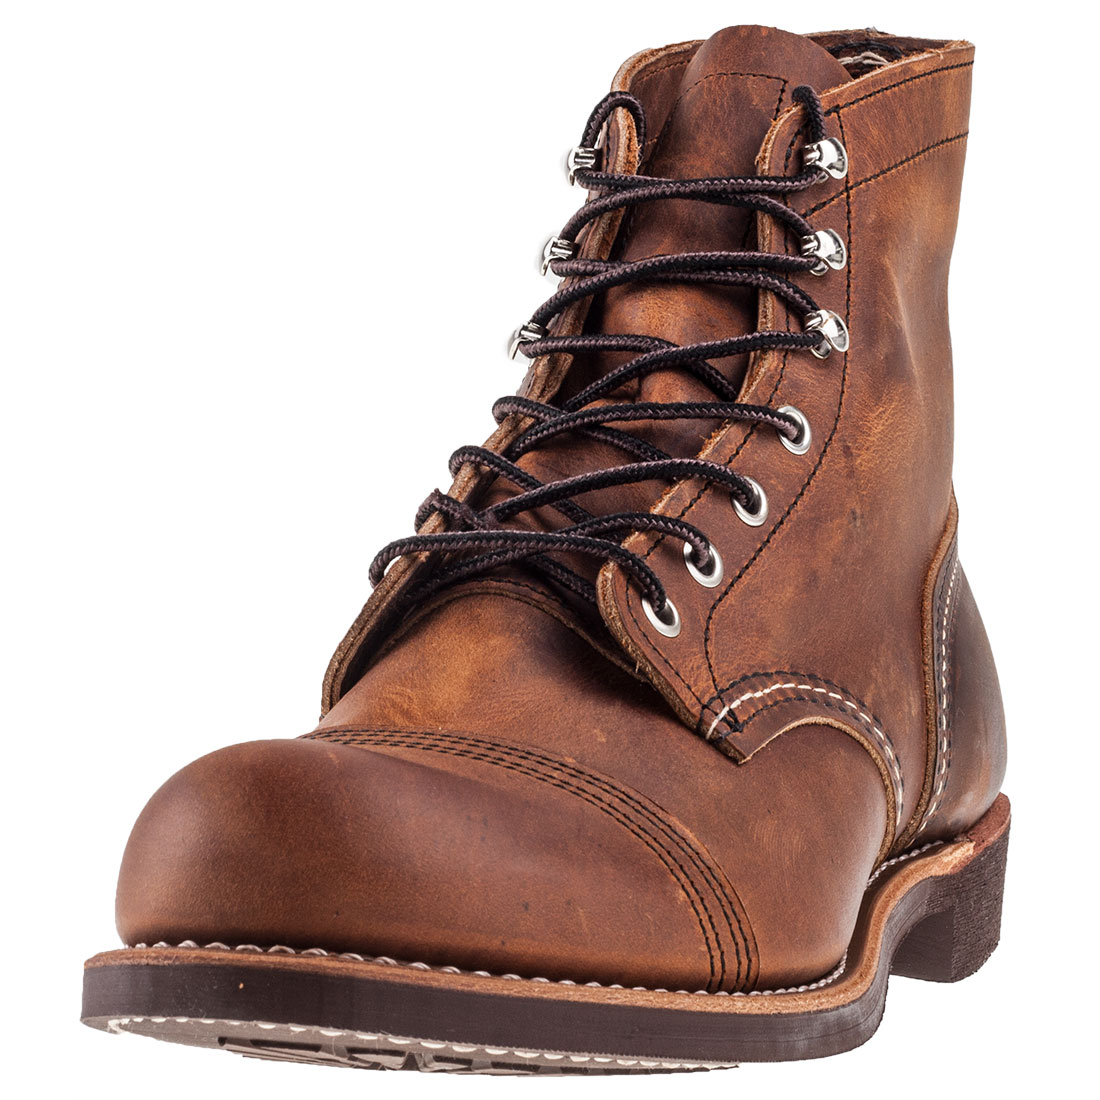 6494b1b268 Image is loading Red-Wing-Iron-Ranger-Mens-Copper-Leather-Boots